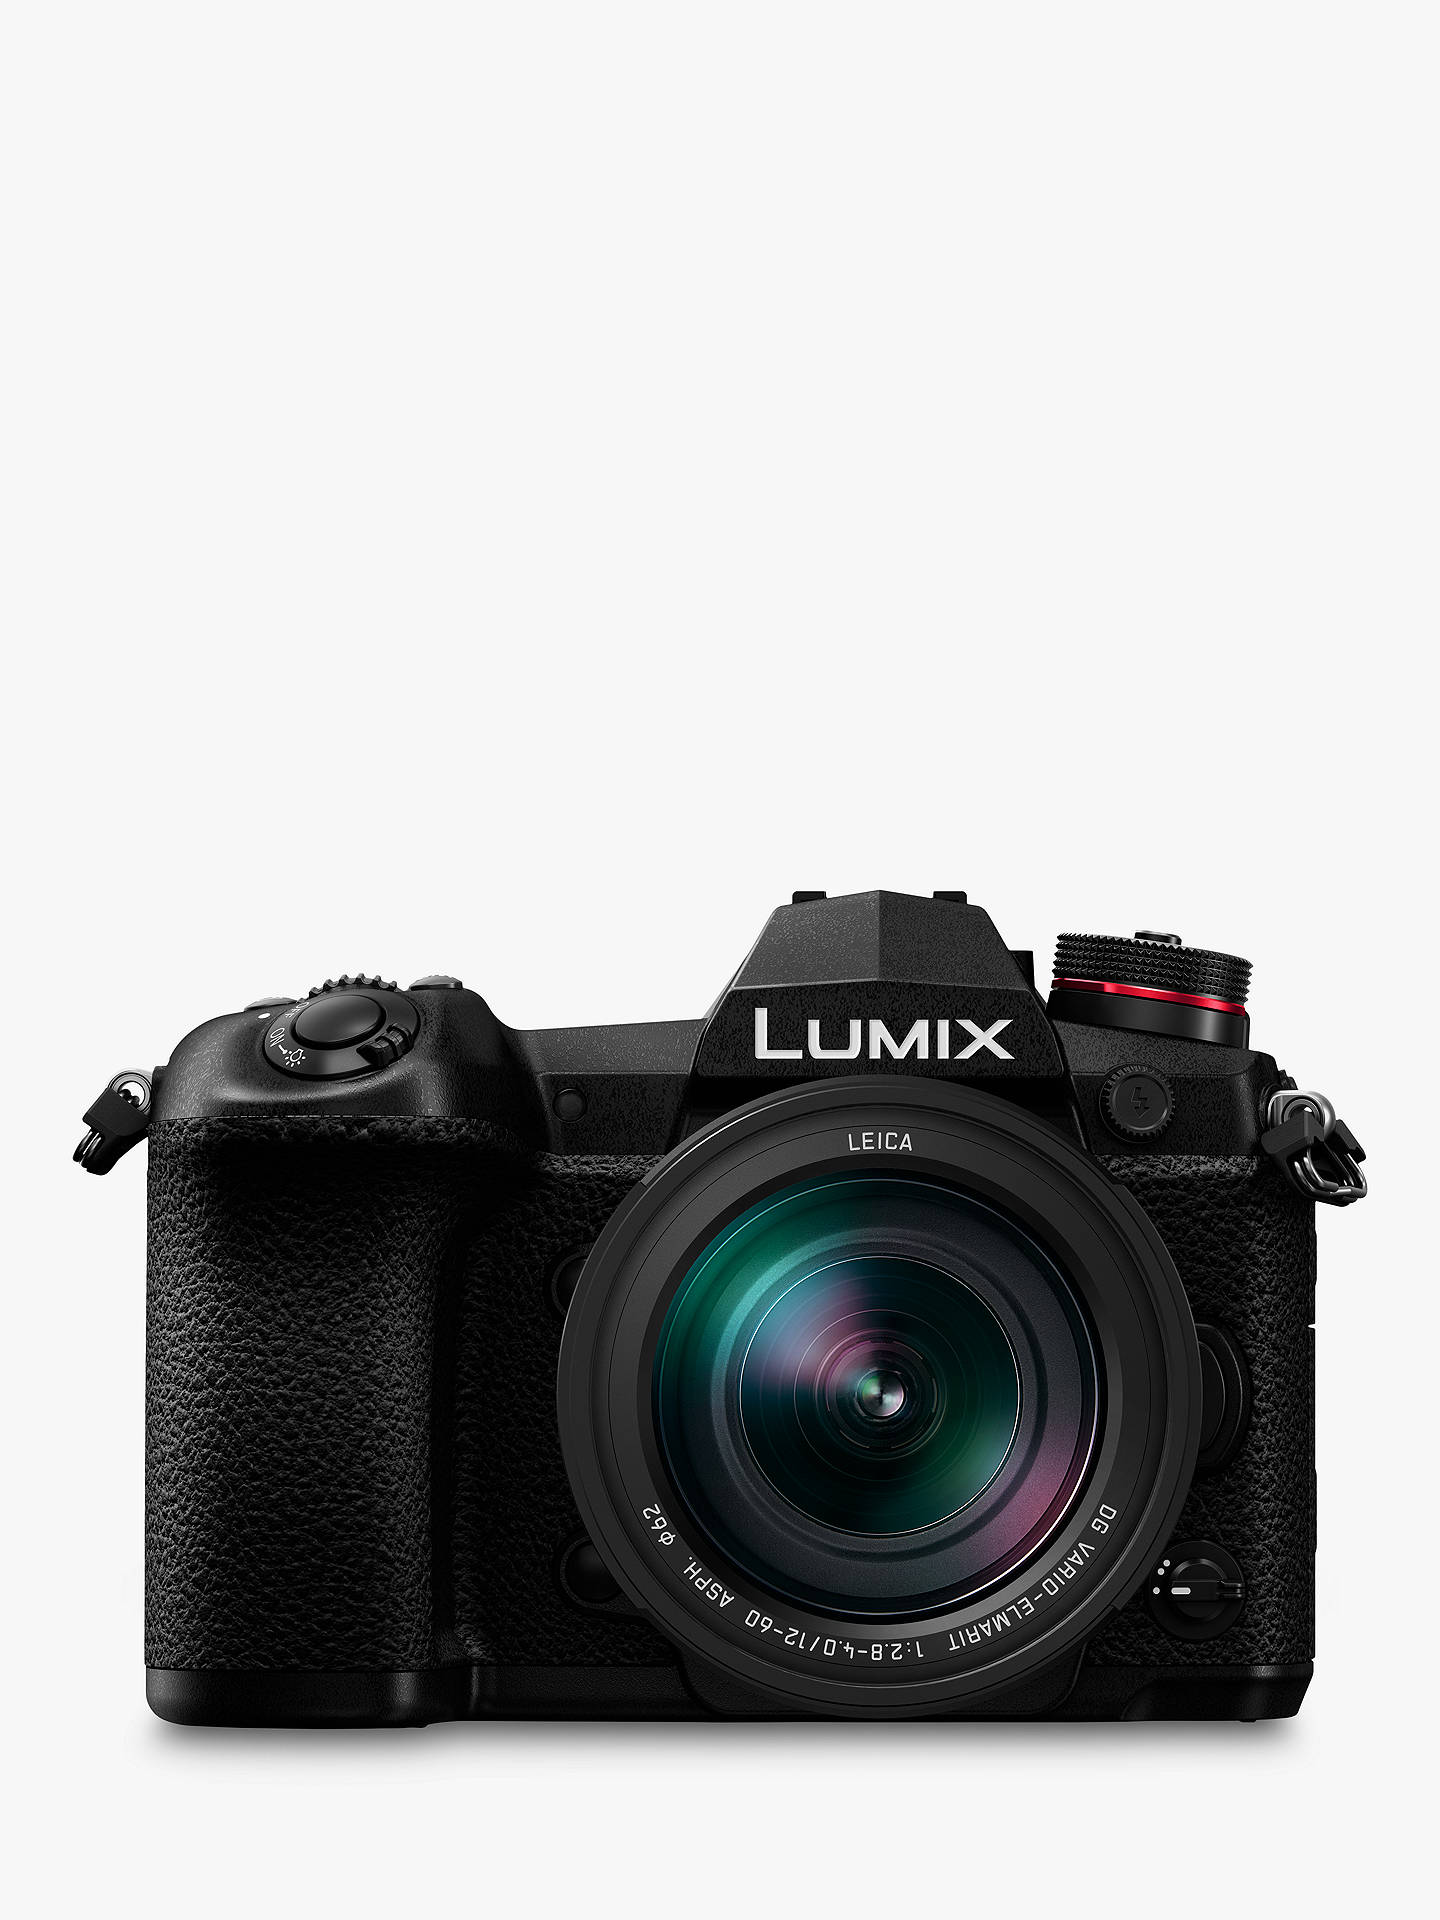 "Buy Panasonic Lumix DC-G9 Compact System Camera with Leica 12-60mm f2.8-4.0 Power O.I.S. Lens, 4K, 20.3MP, 4x Digital Zoom, Wi-Fi, OLED Viewfinder, 3"" Vari-Angle Touch Screen, Black Online at johnlewis.com"